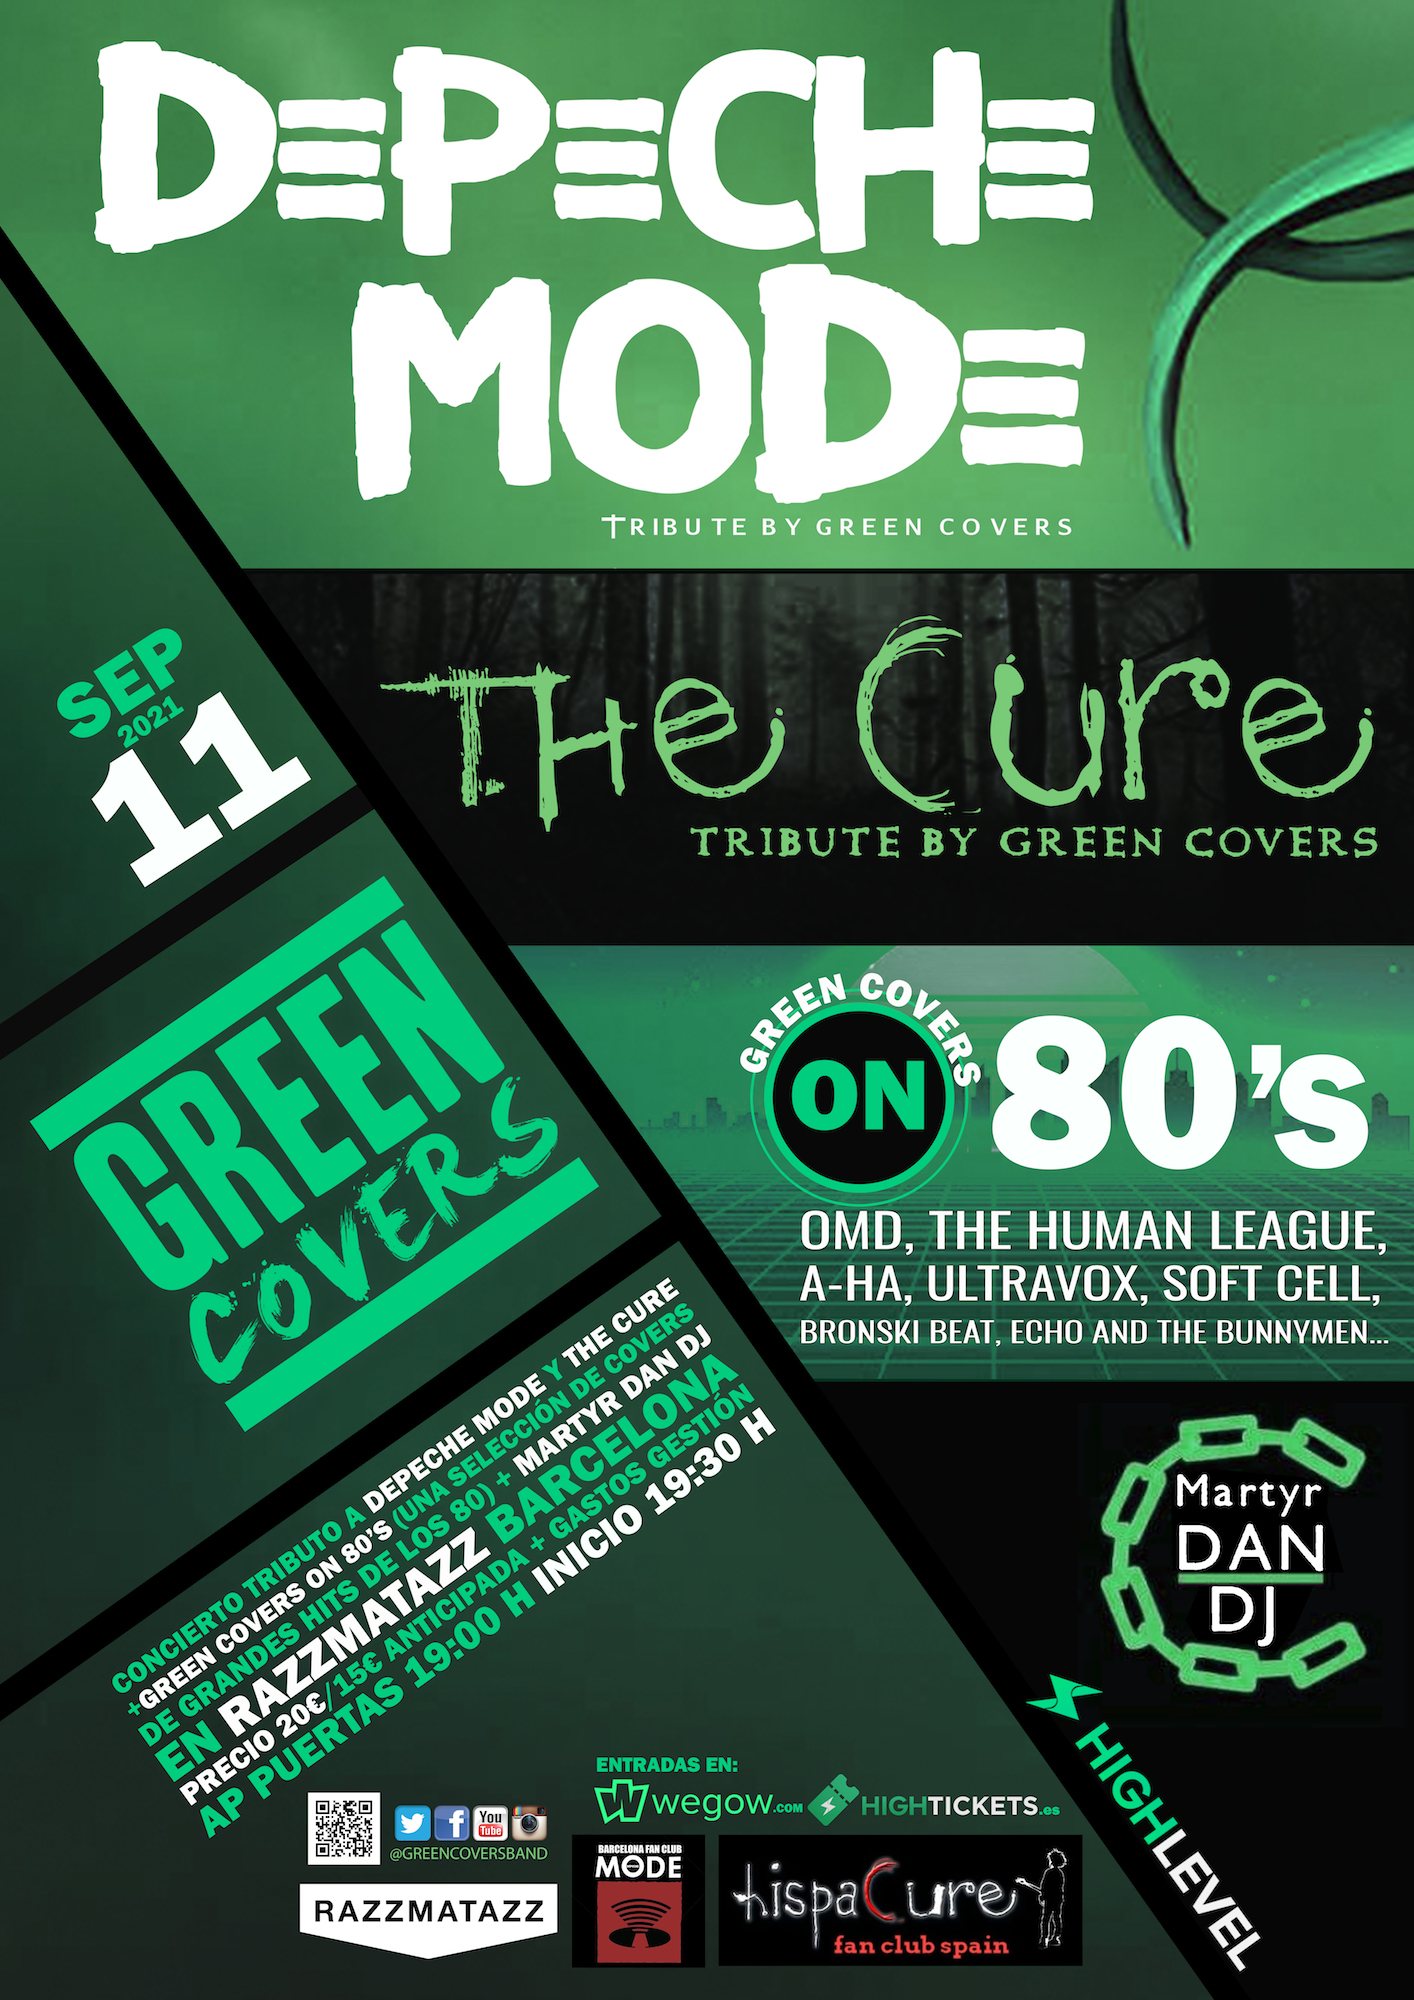 depeche mode the cure tribute by green covers barcelona 1624524211575914